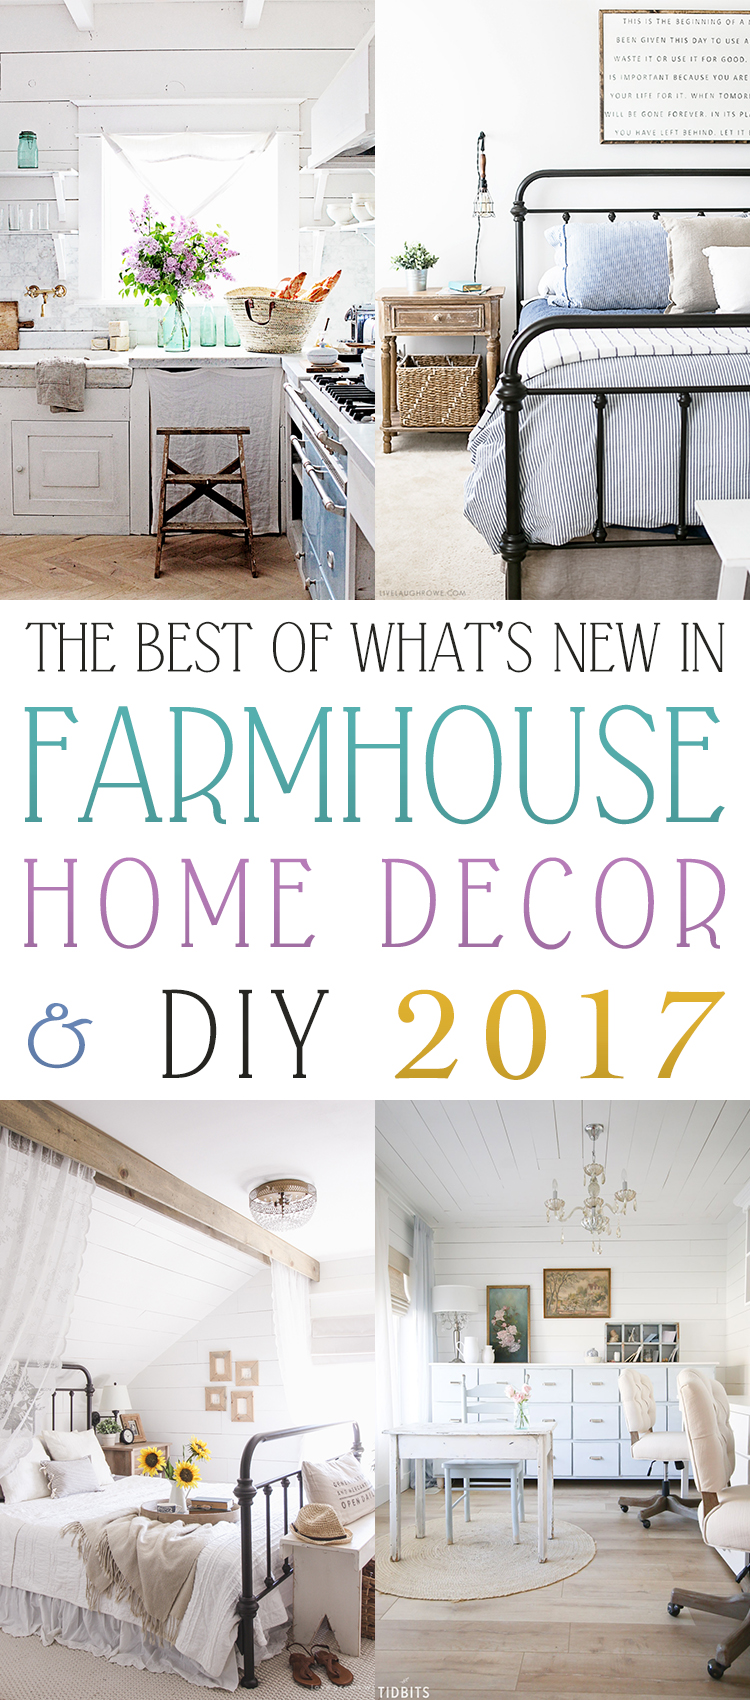 http://thecottagemarket.com/wp-content/uploads/2017/12/FarmhouseDecor-t-1.jpg